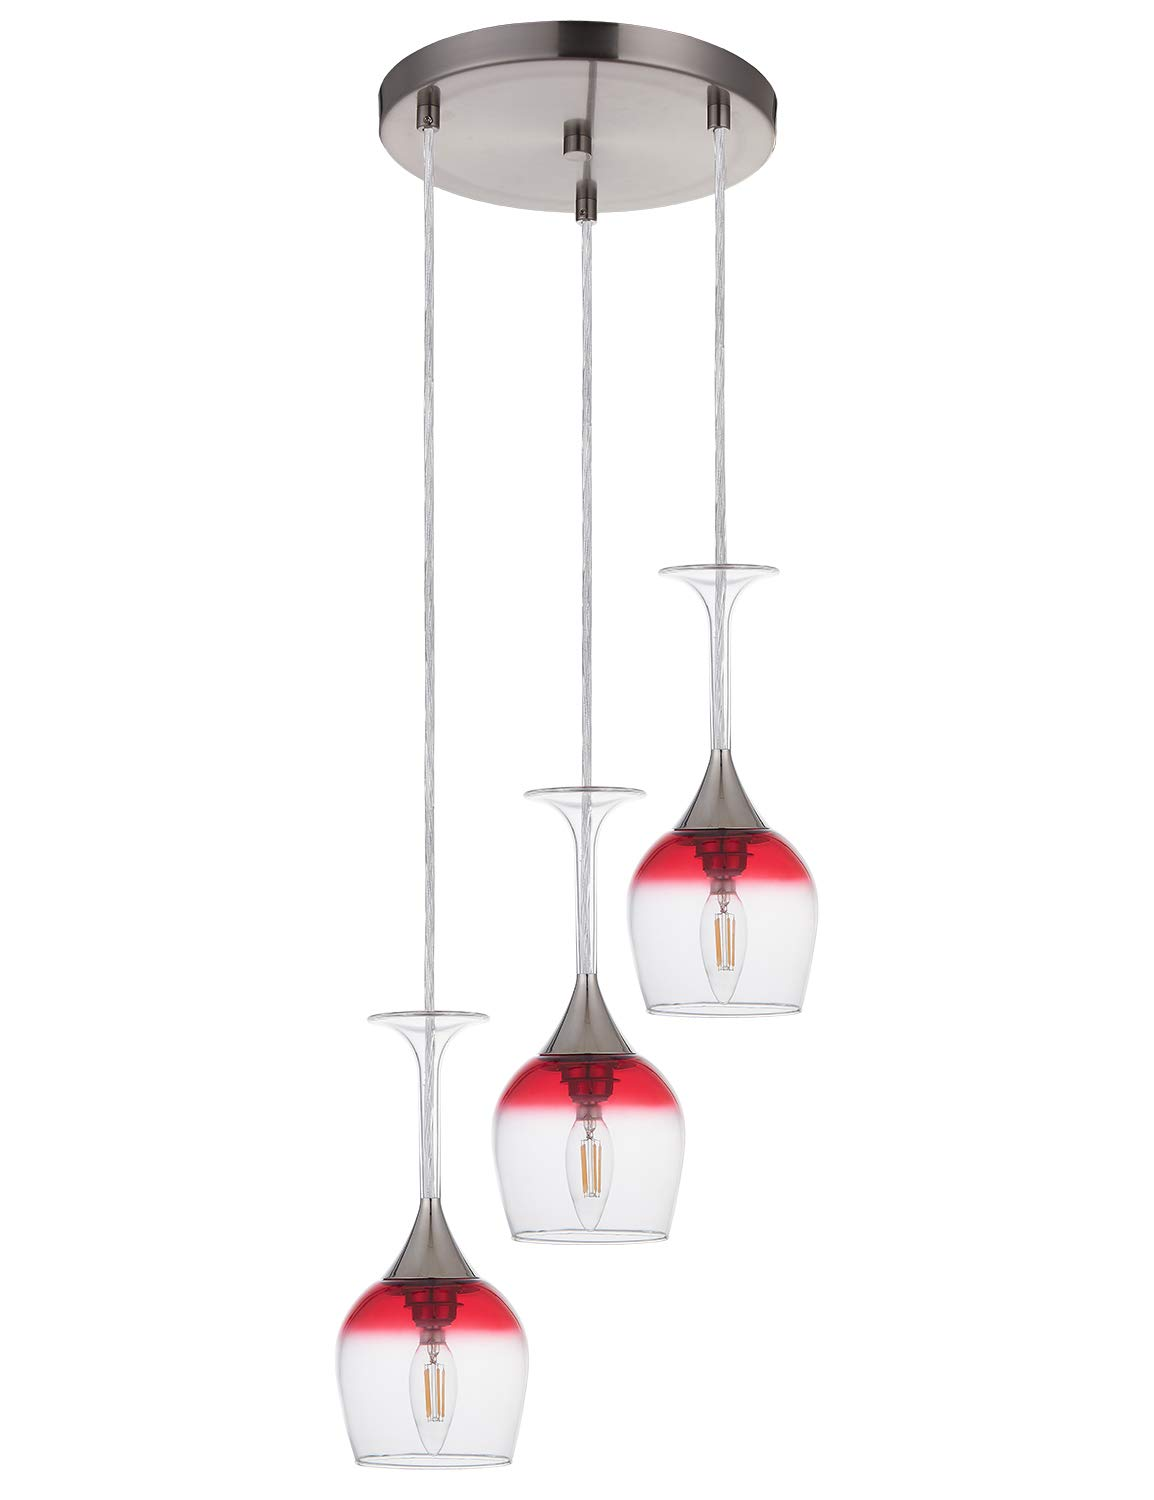 Doraimi 3 Light Wine Glass Chandelier with Brushed Nickel Finish, Modern Pendant Ceiling Lighting Fixture Patented Product for Dining Room Bar Cafe Kitchen Island Living Room, LED Bulb not Include